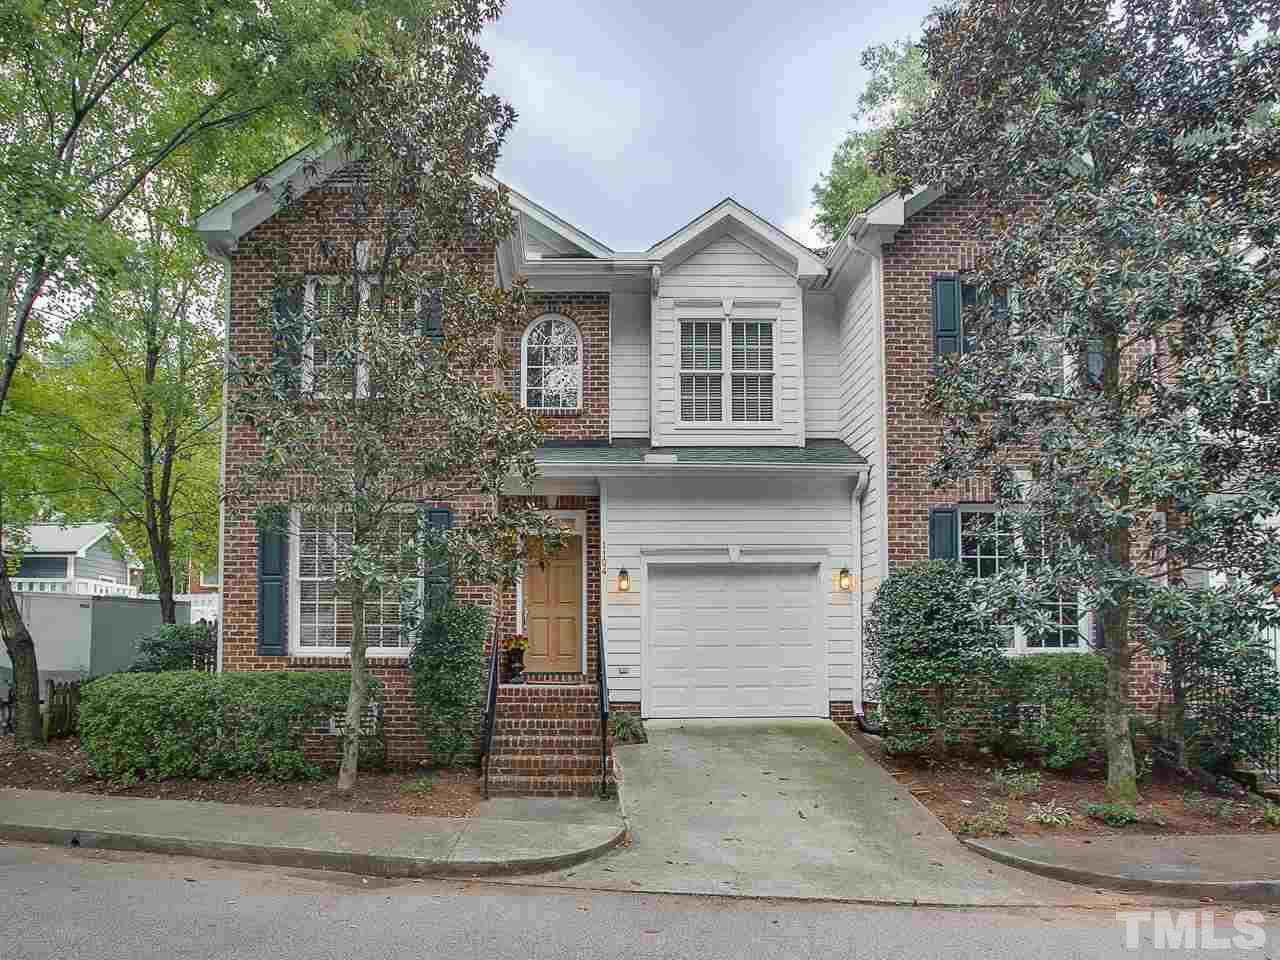 $325,000 - 3Br/3Ba -  for Sale in Banbury Woods Place, Raleigh